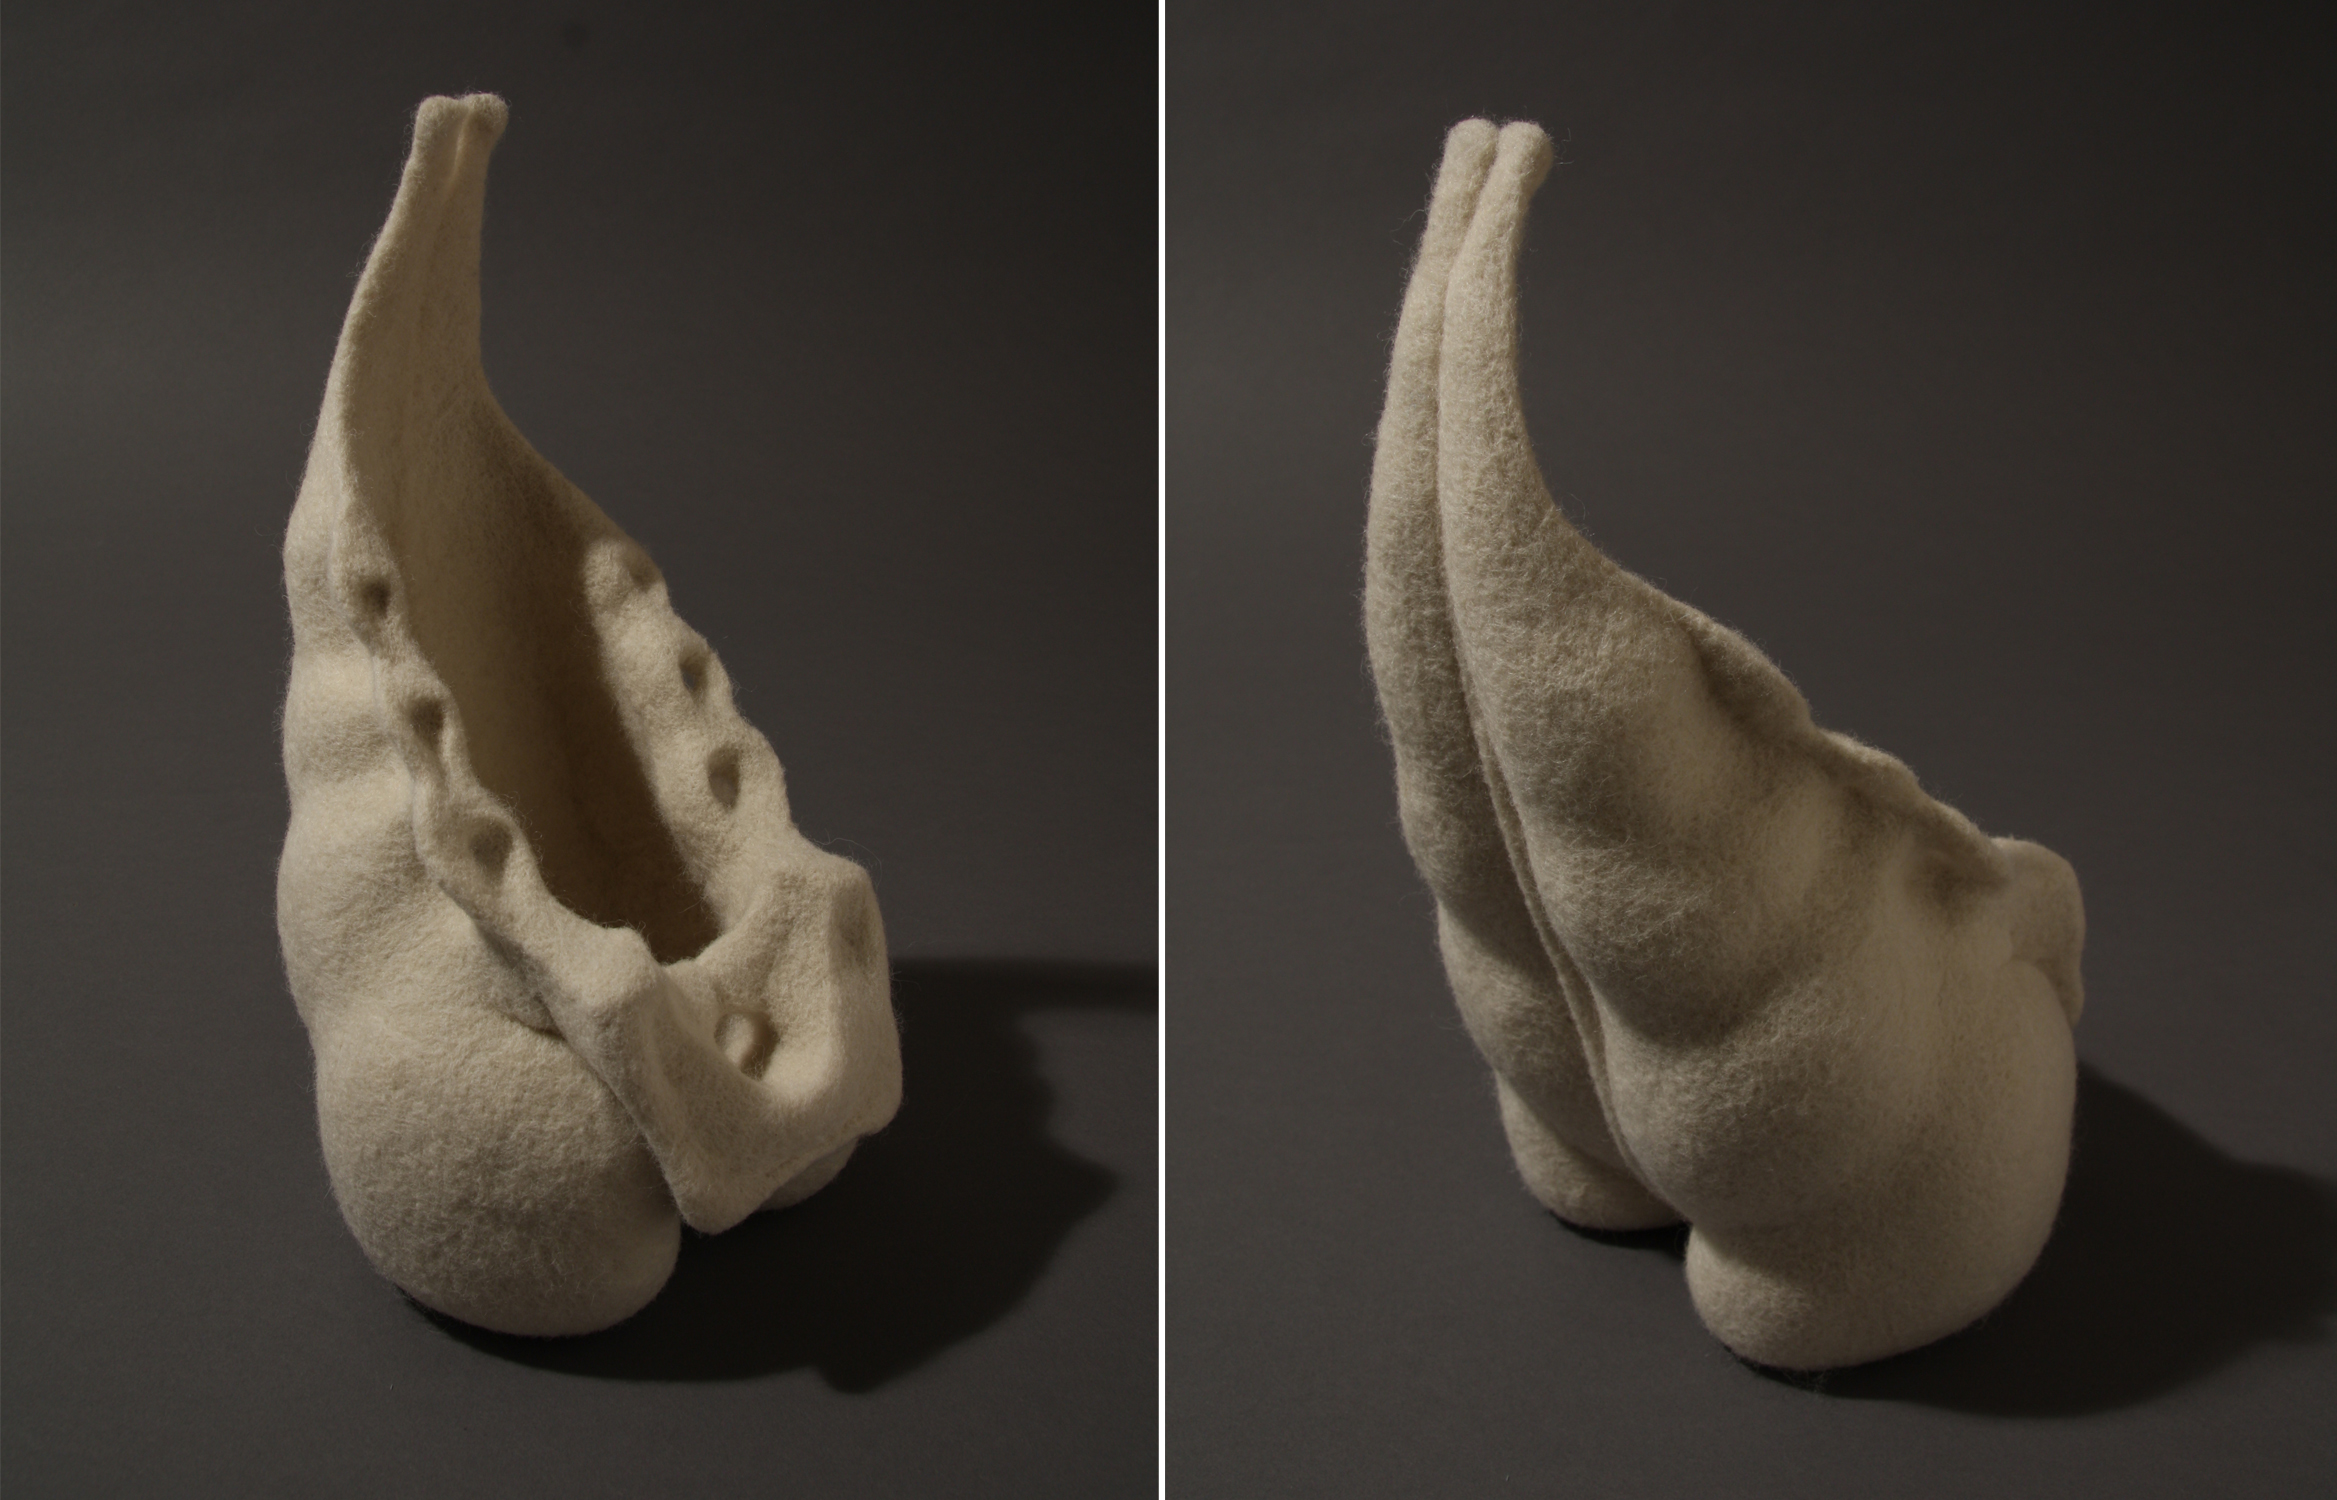 Flesh & Bone Study #3 (Sacrum/Vessel), one of the works included in Figurative Fiber.